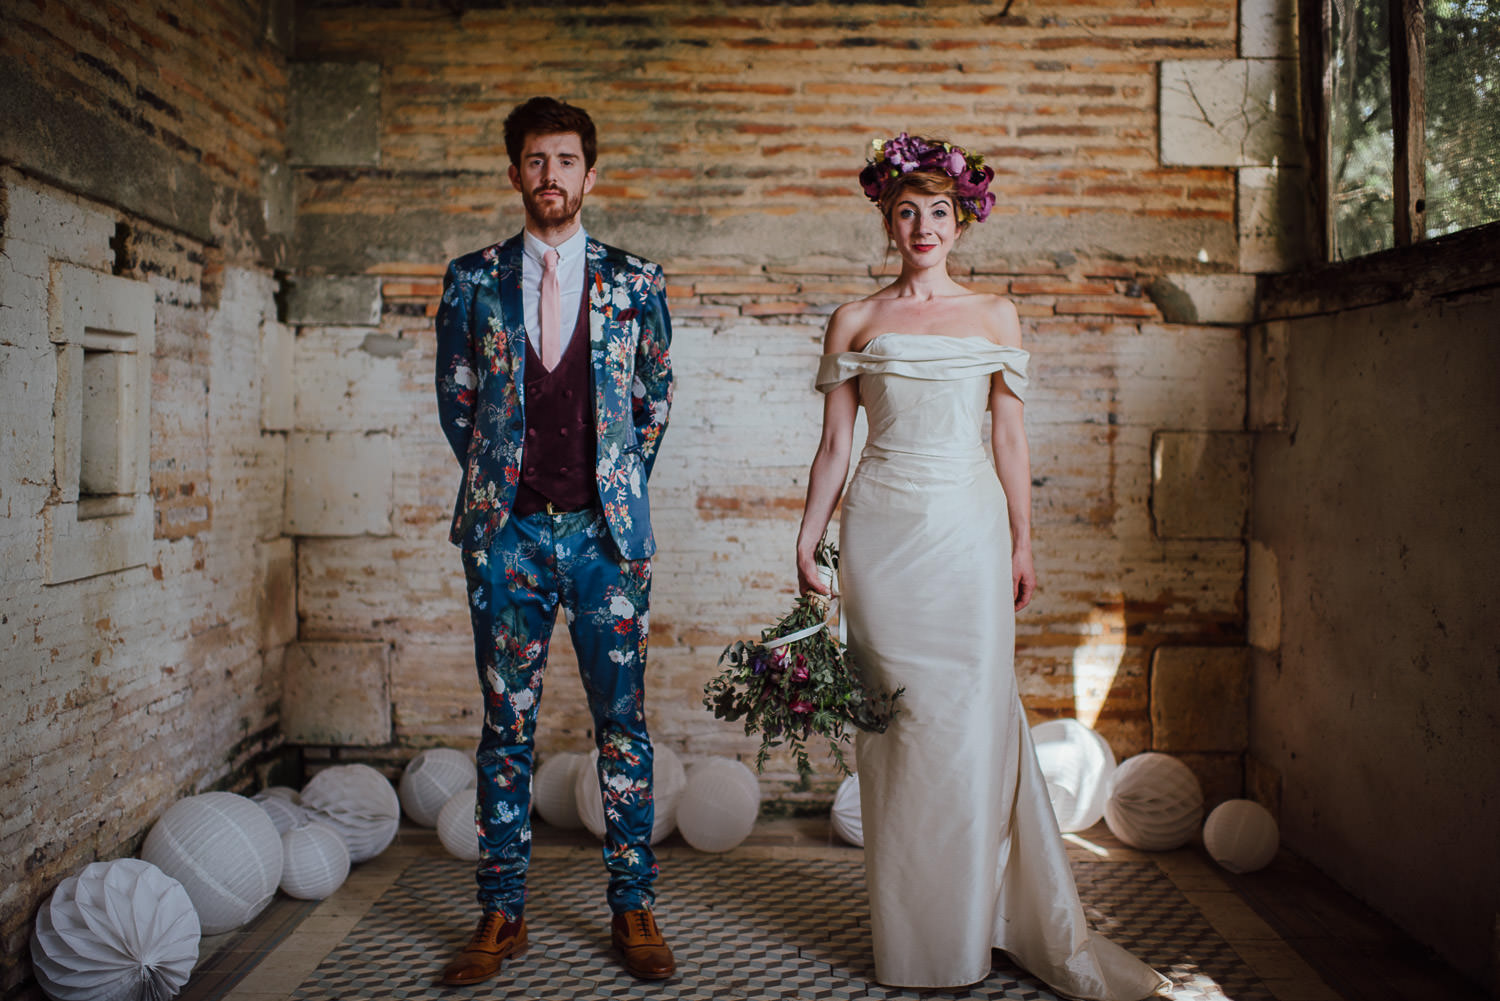 Cool wedding suit in Bordeaux Chateau wedding by creative destination wedding photographer the shannons photography